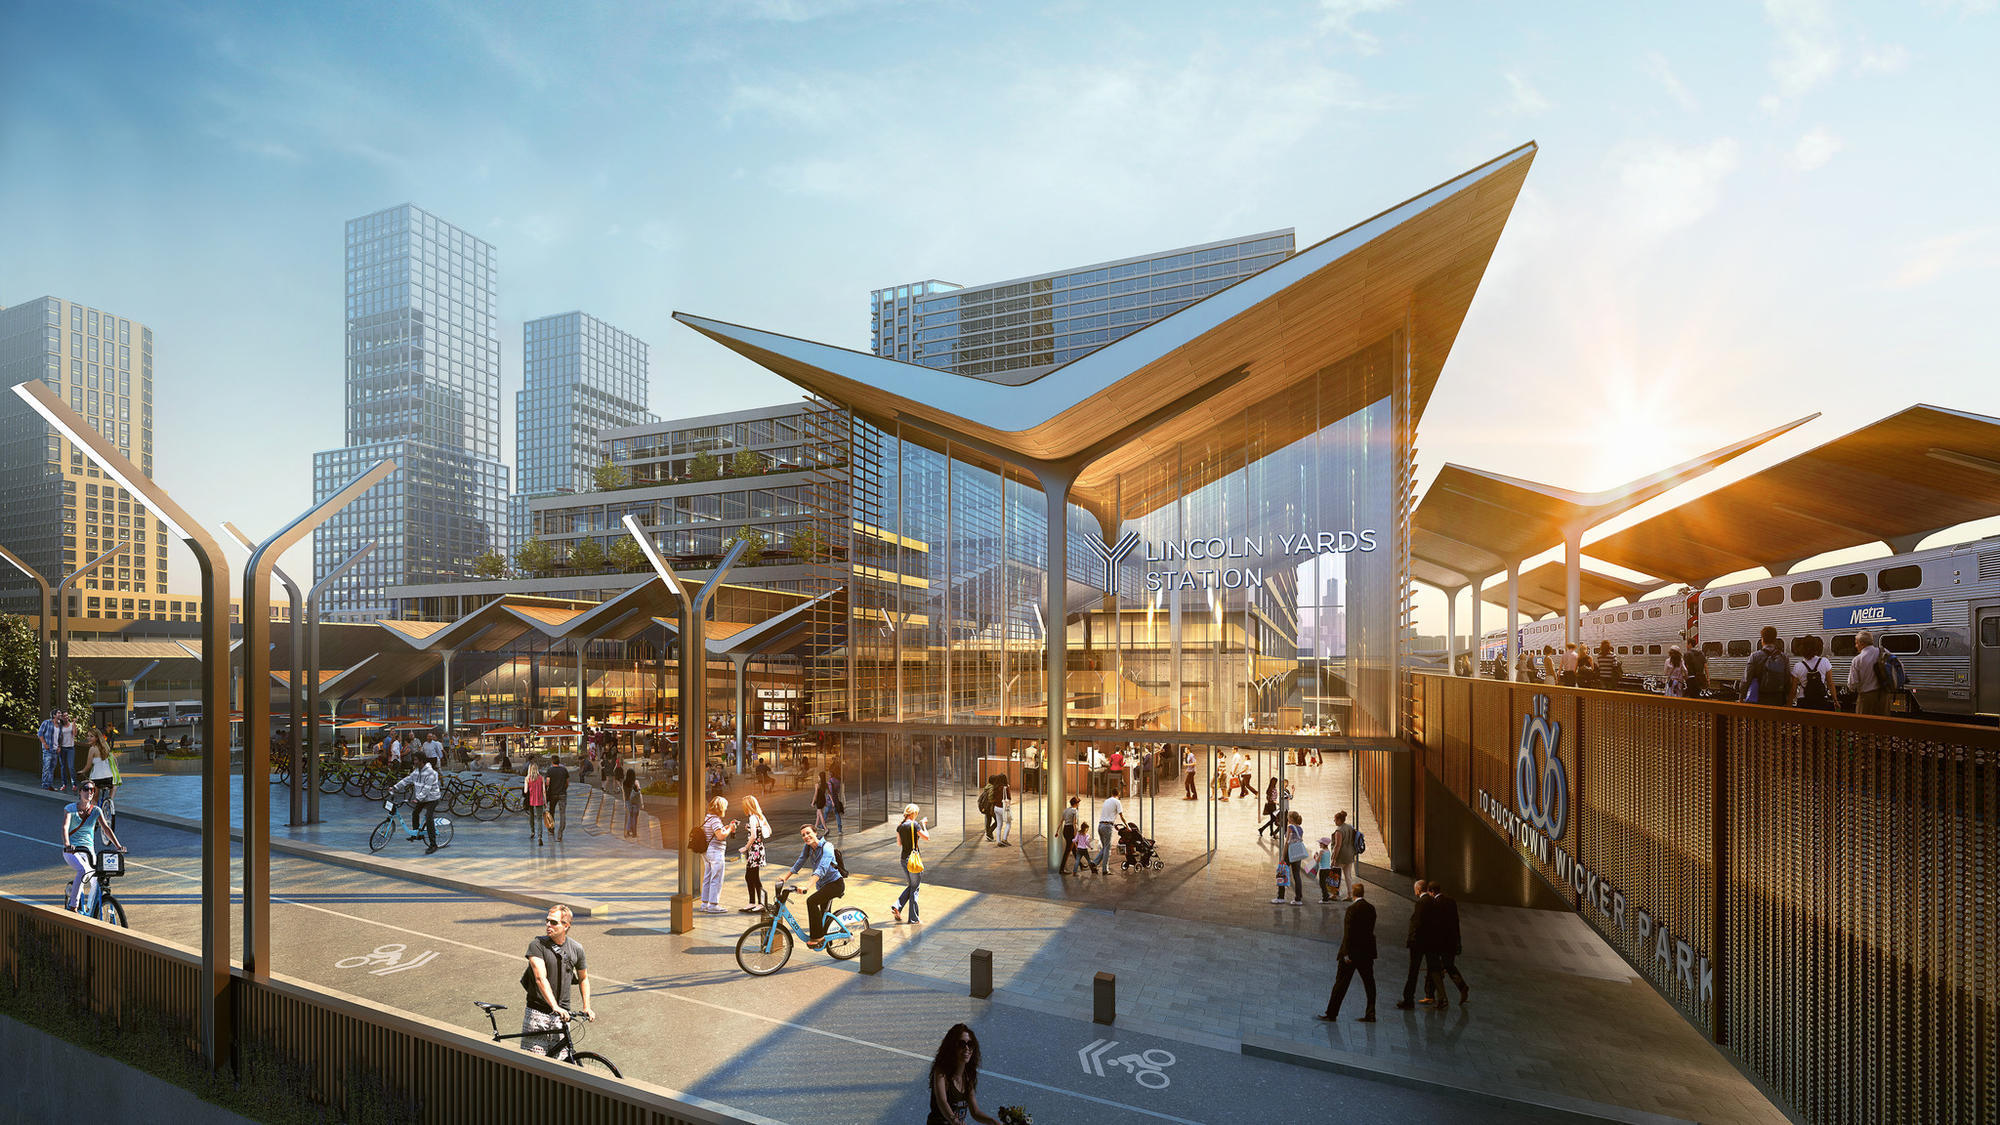 Latest Plans For Lincoln Yards Development On North Side